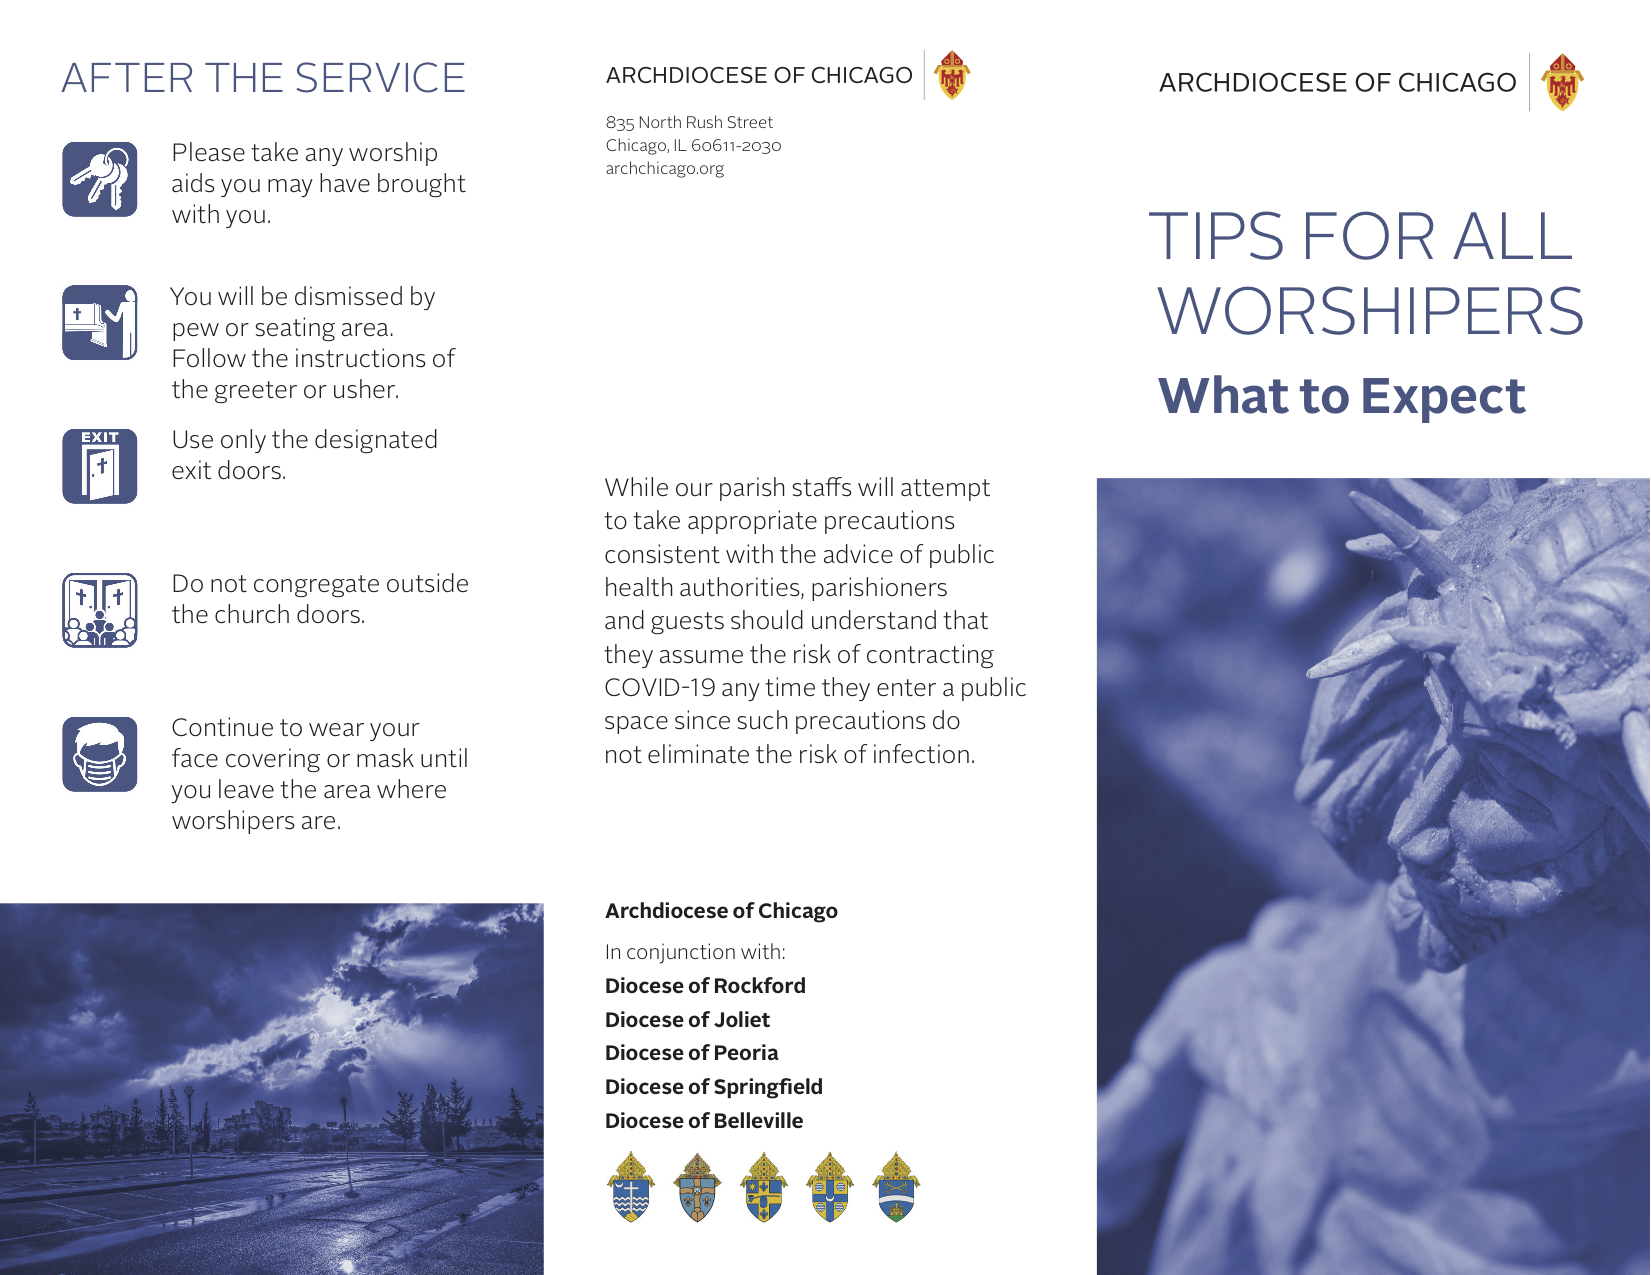 pamphlet from Archdiocese of Chicago on tips for parishioners returning to church